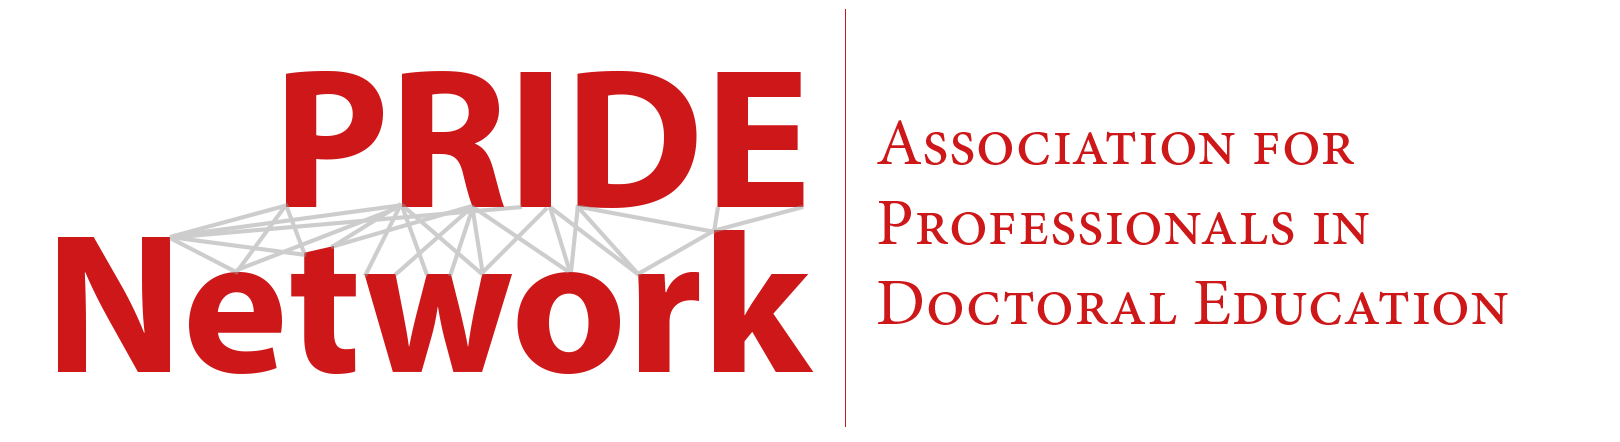 PRIDE Network – Professionals in Doctoral Education